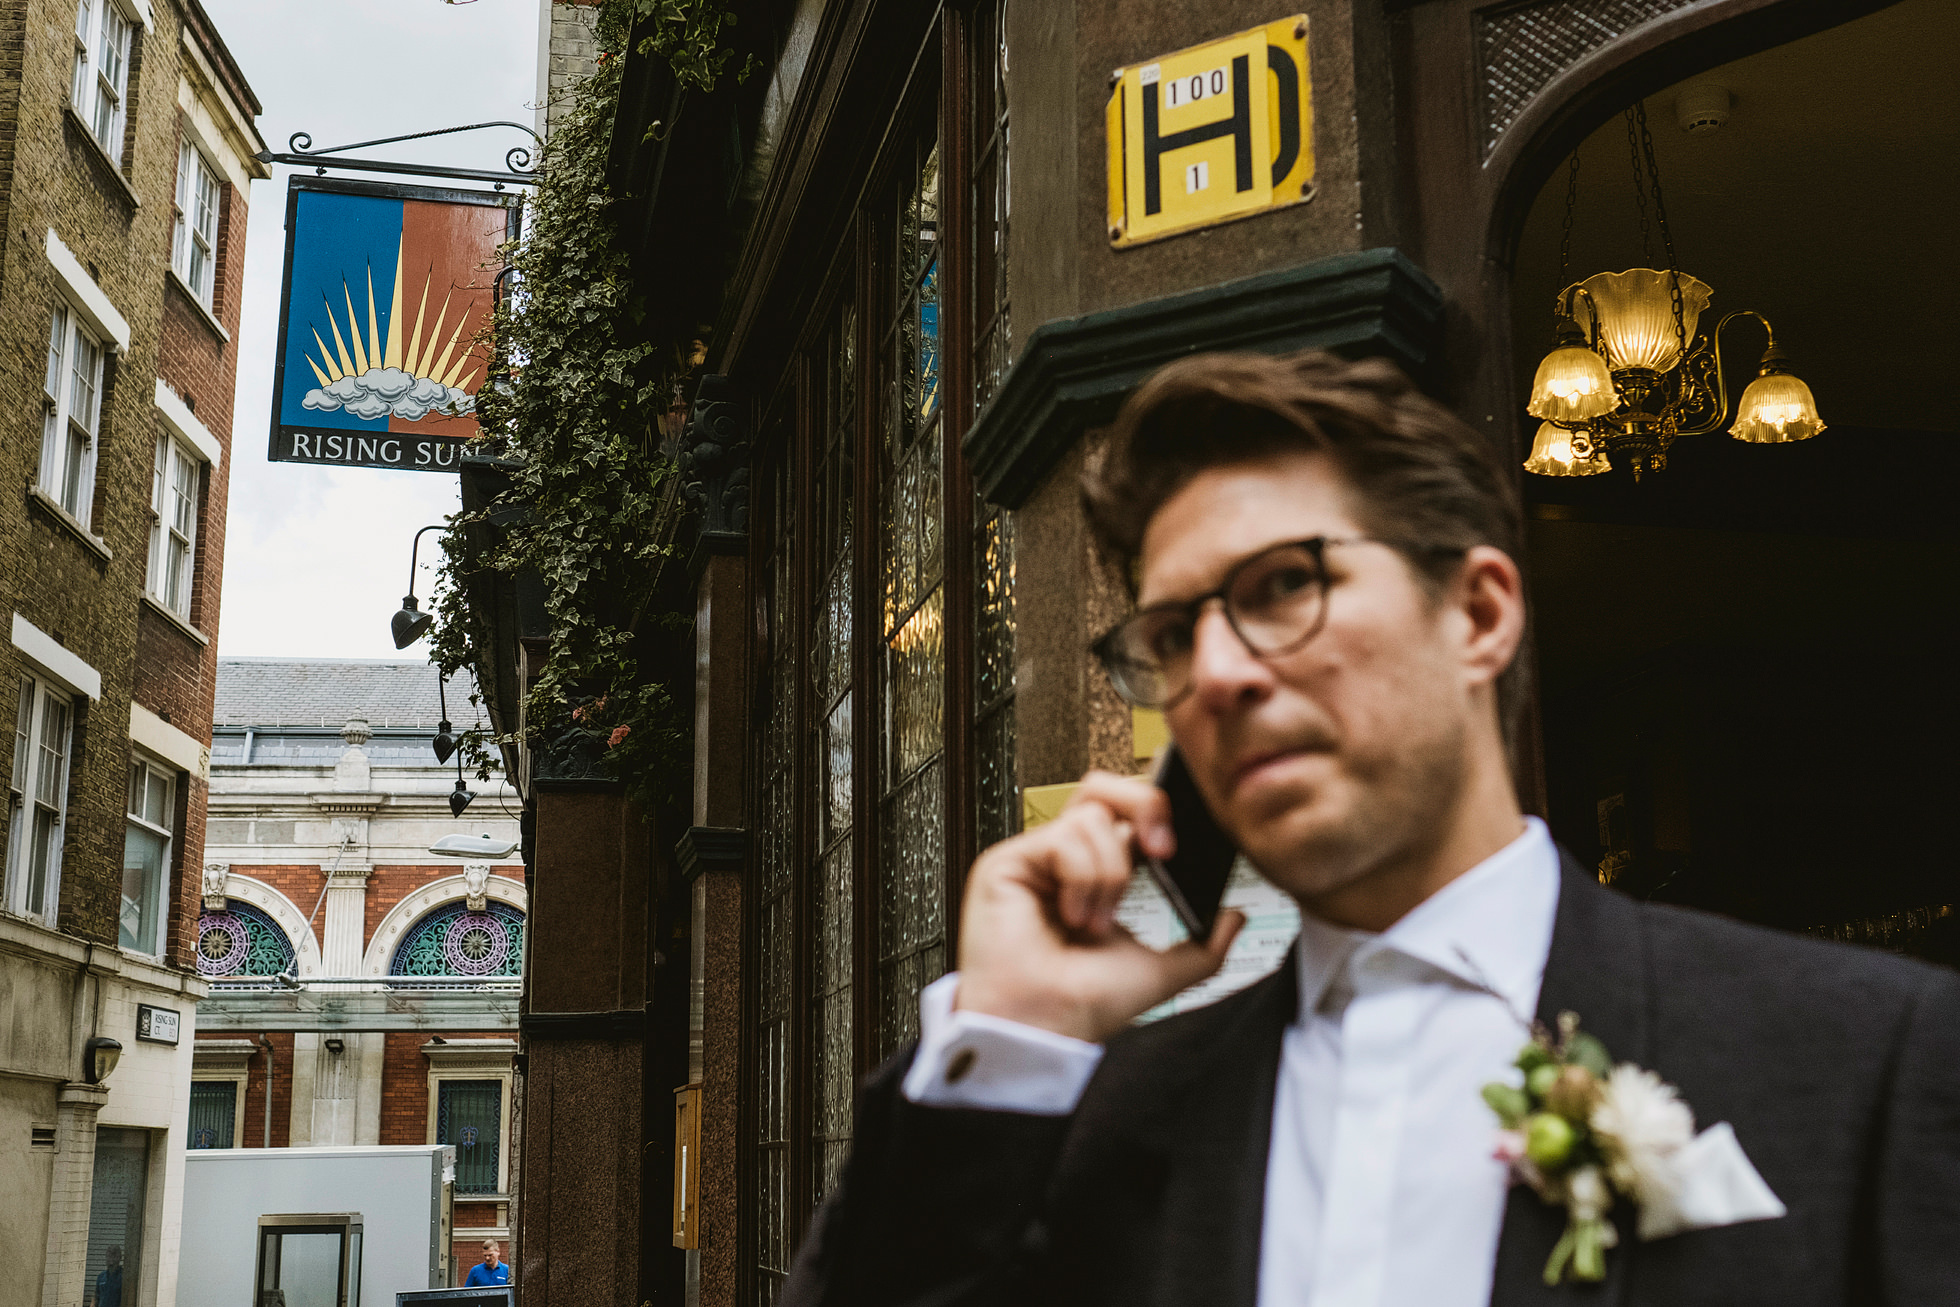 Groom talks on mobile phone on London Street before wedding at the Ned. Photo by York Place Studios